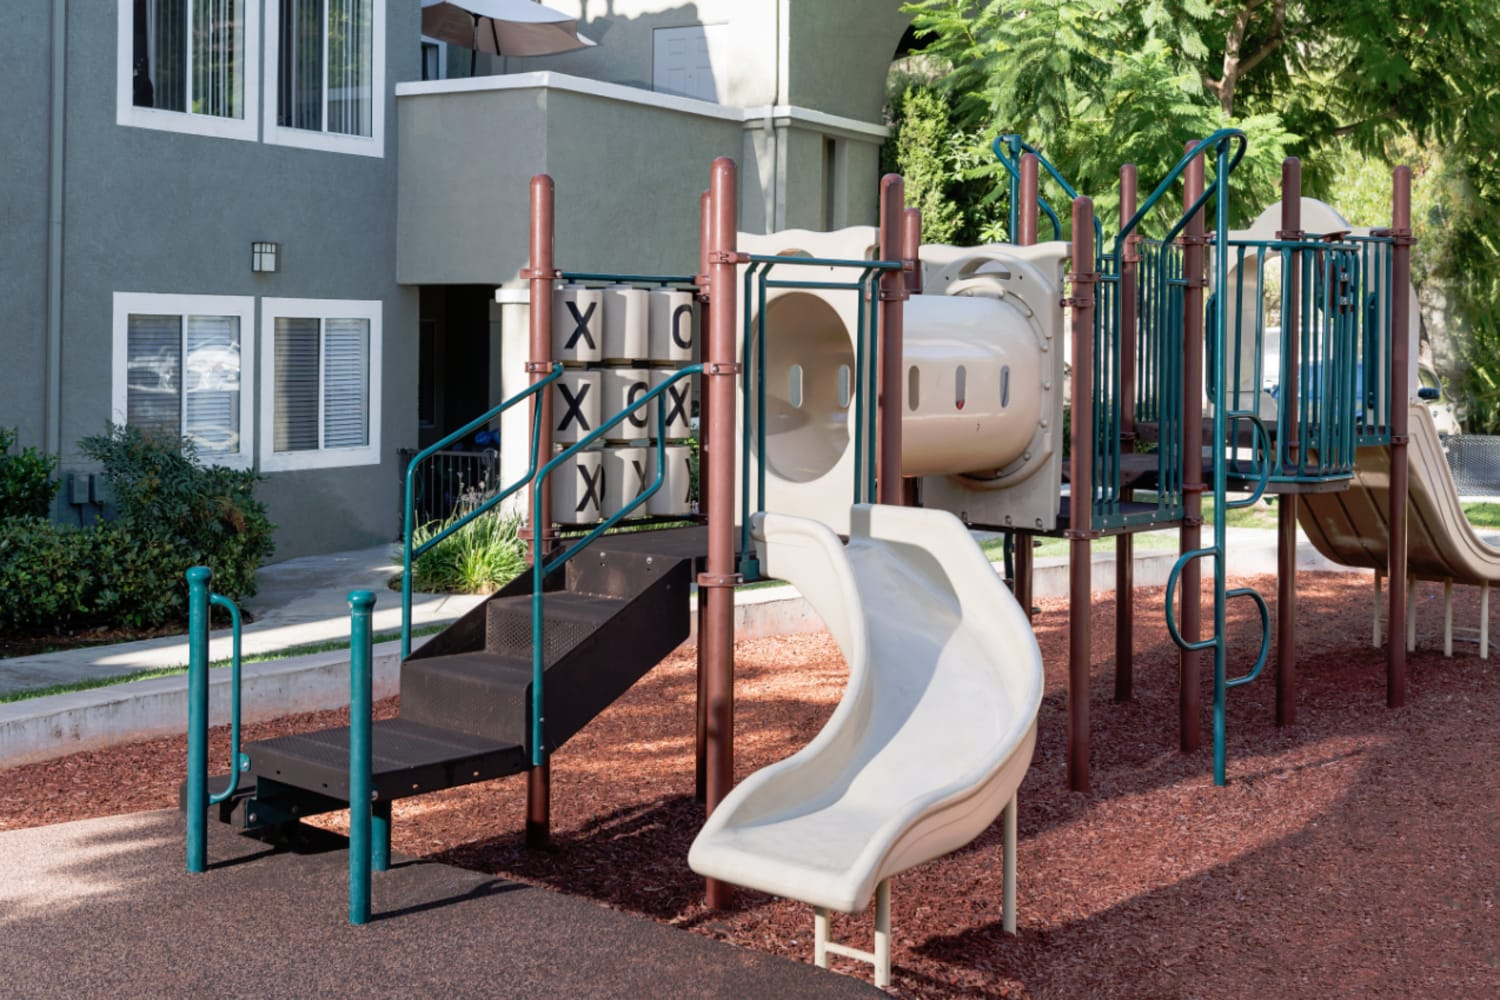 Playground at Madrid Apartments in Mission Viejo, California